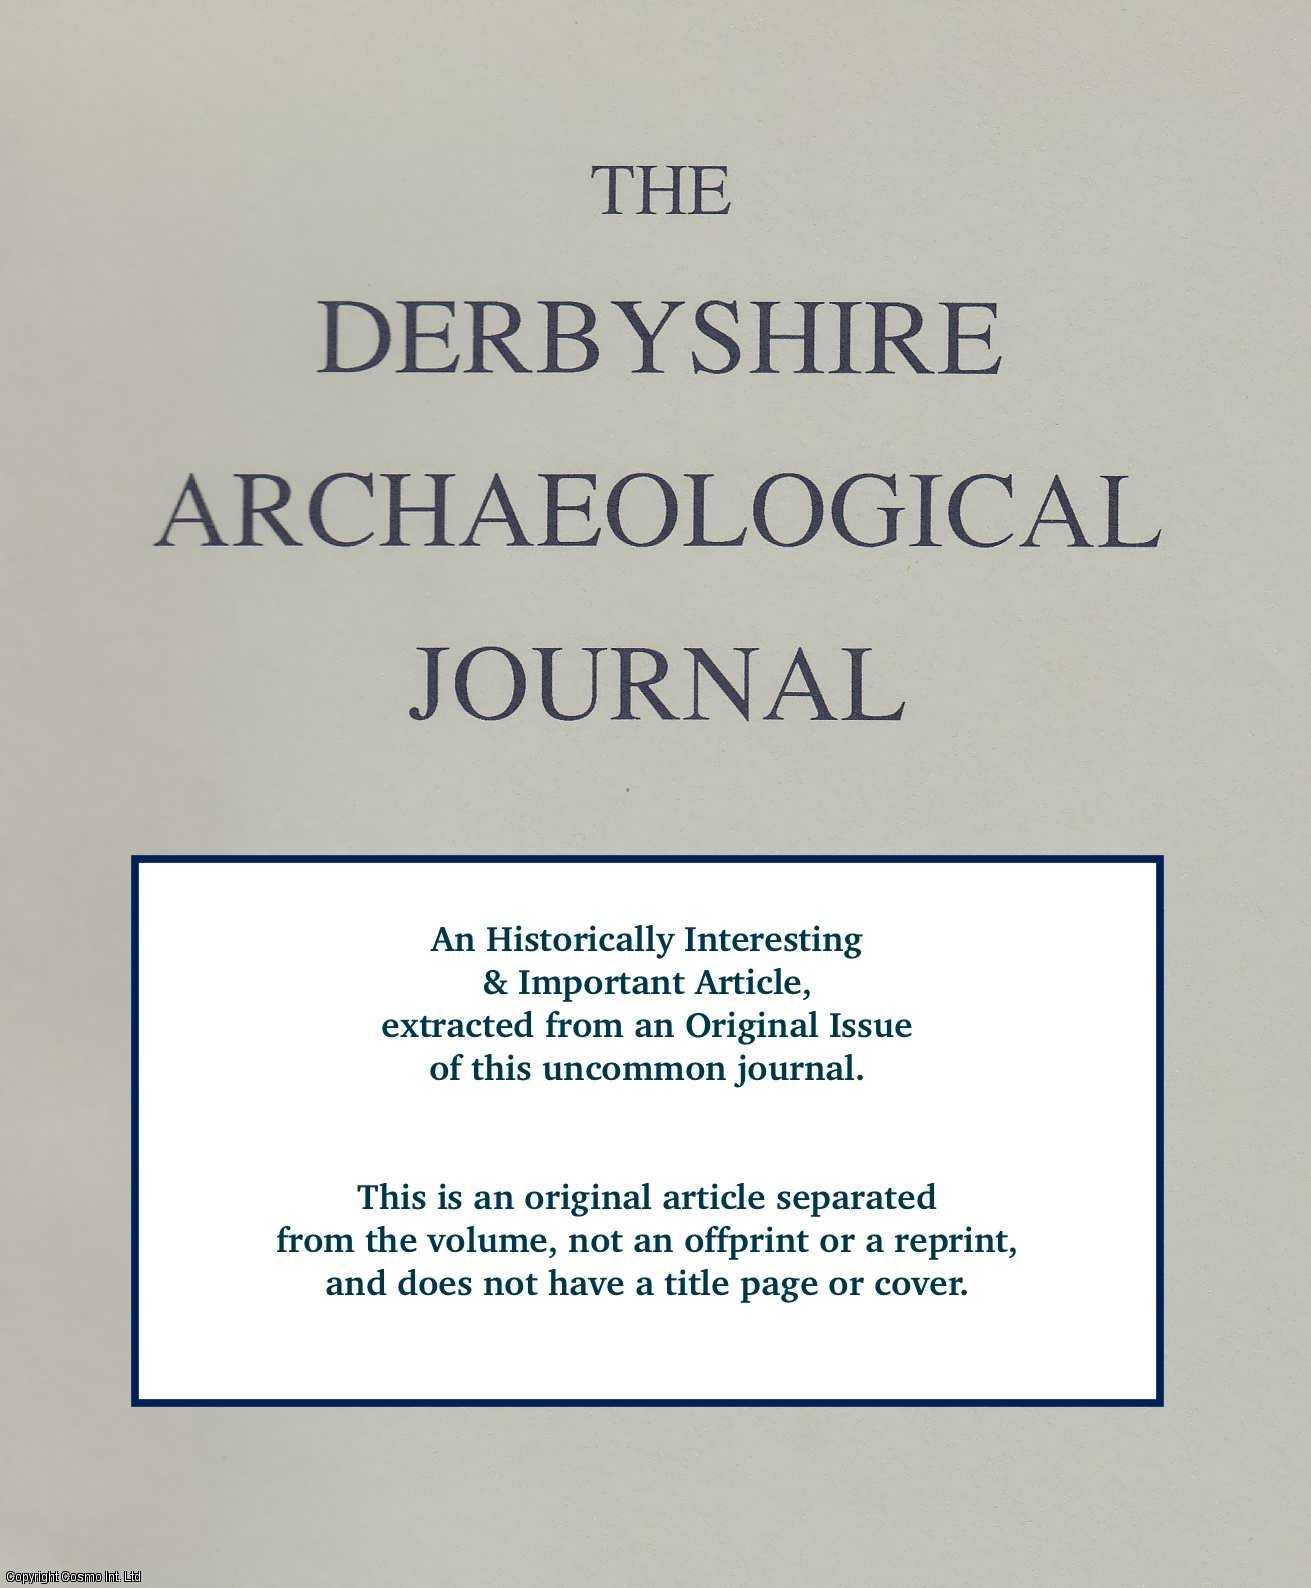 RICHARD HODGES & MARTIN WILDGOOSE - Roystone Grange: Excavations of The Cistercian Grange, 1980-87. An original article from the Derbyshire Archaeological Journal 1991.